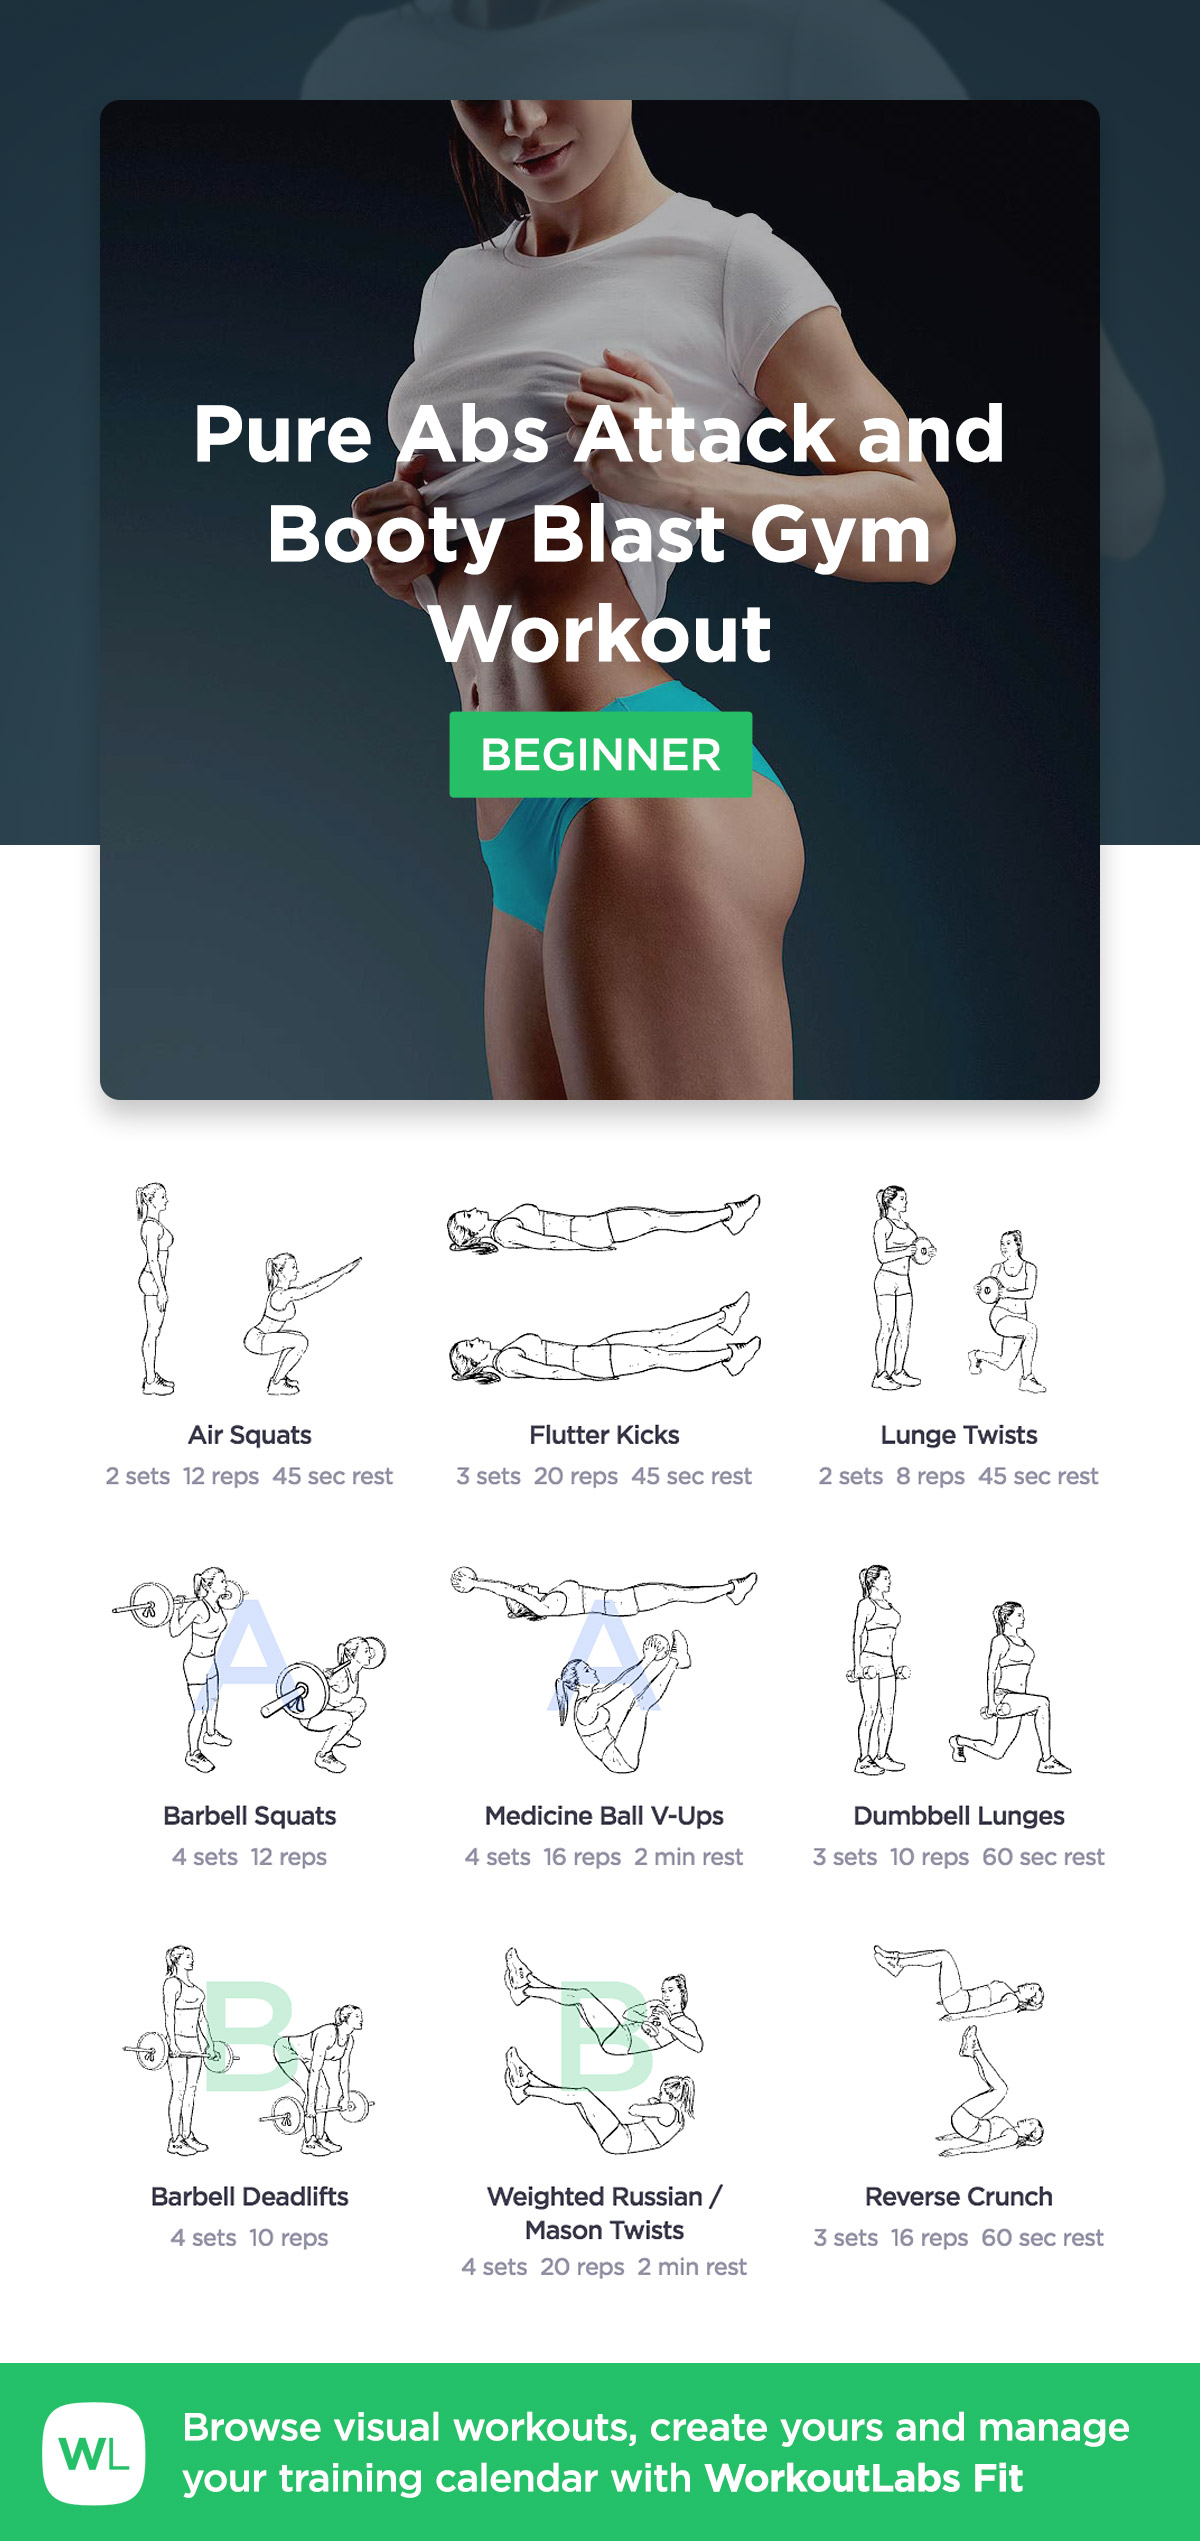 Pure Abs And Booty Blast Gym Workout Workoutlabs Fit